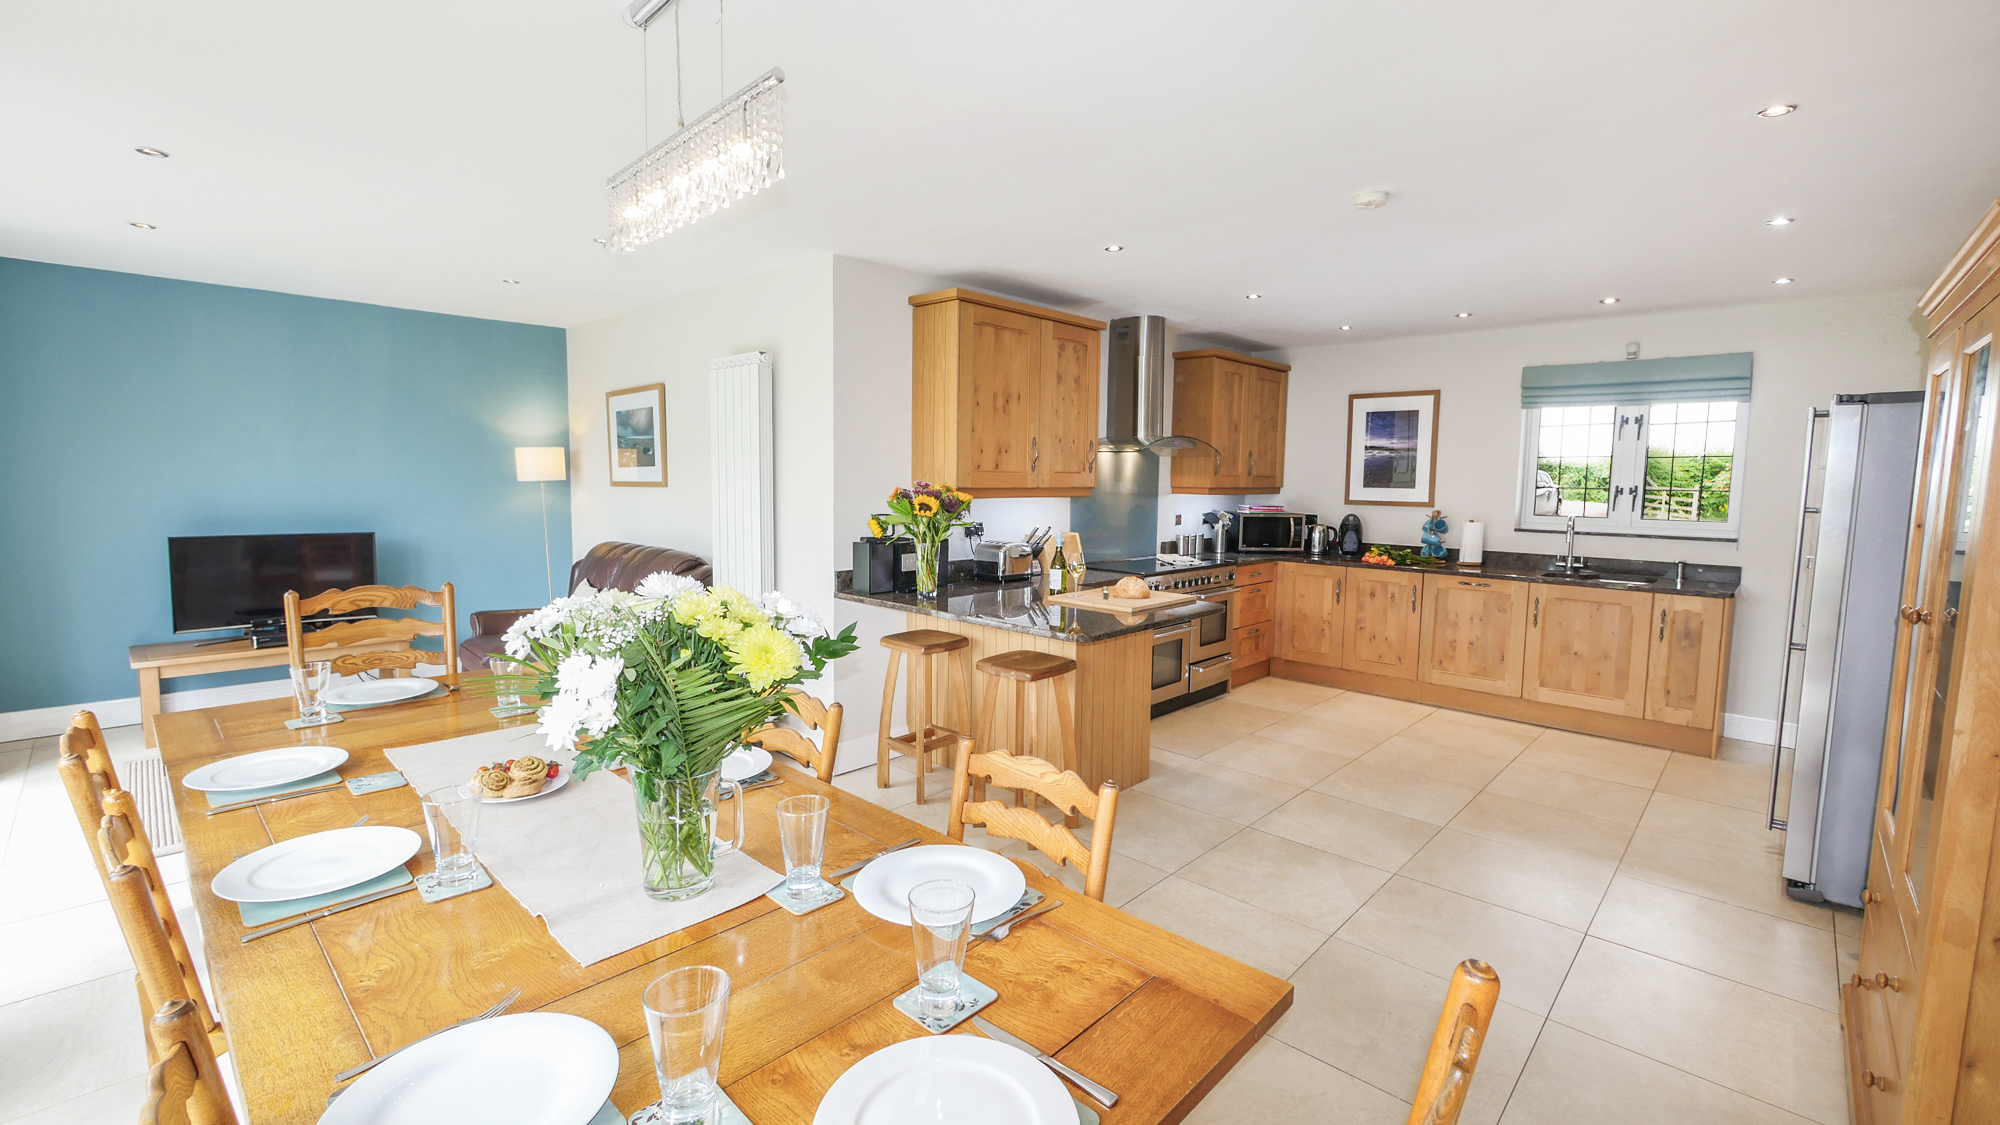 luxury cottages in Northumberland for 10 people, large cottages in Alnmouth available in the summer, luxury houses for rent in Alnmouth